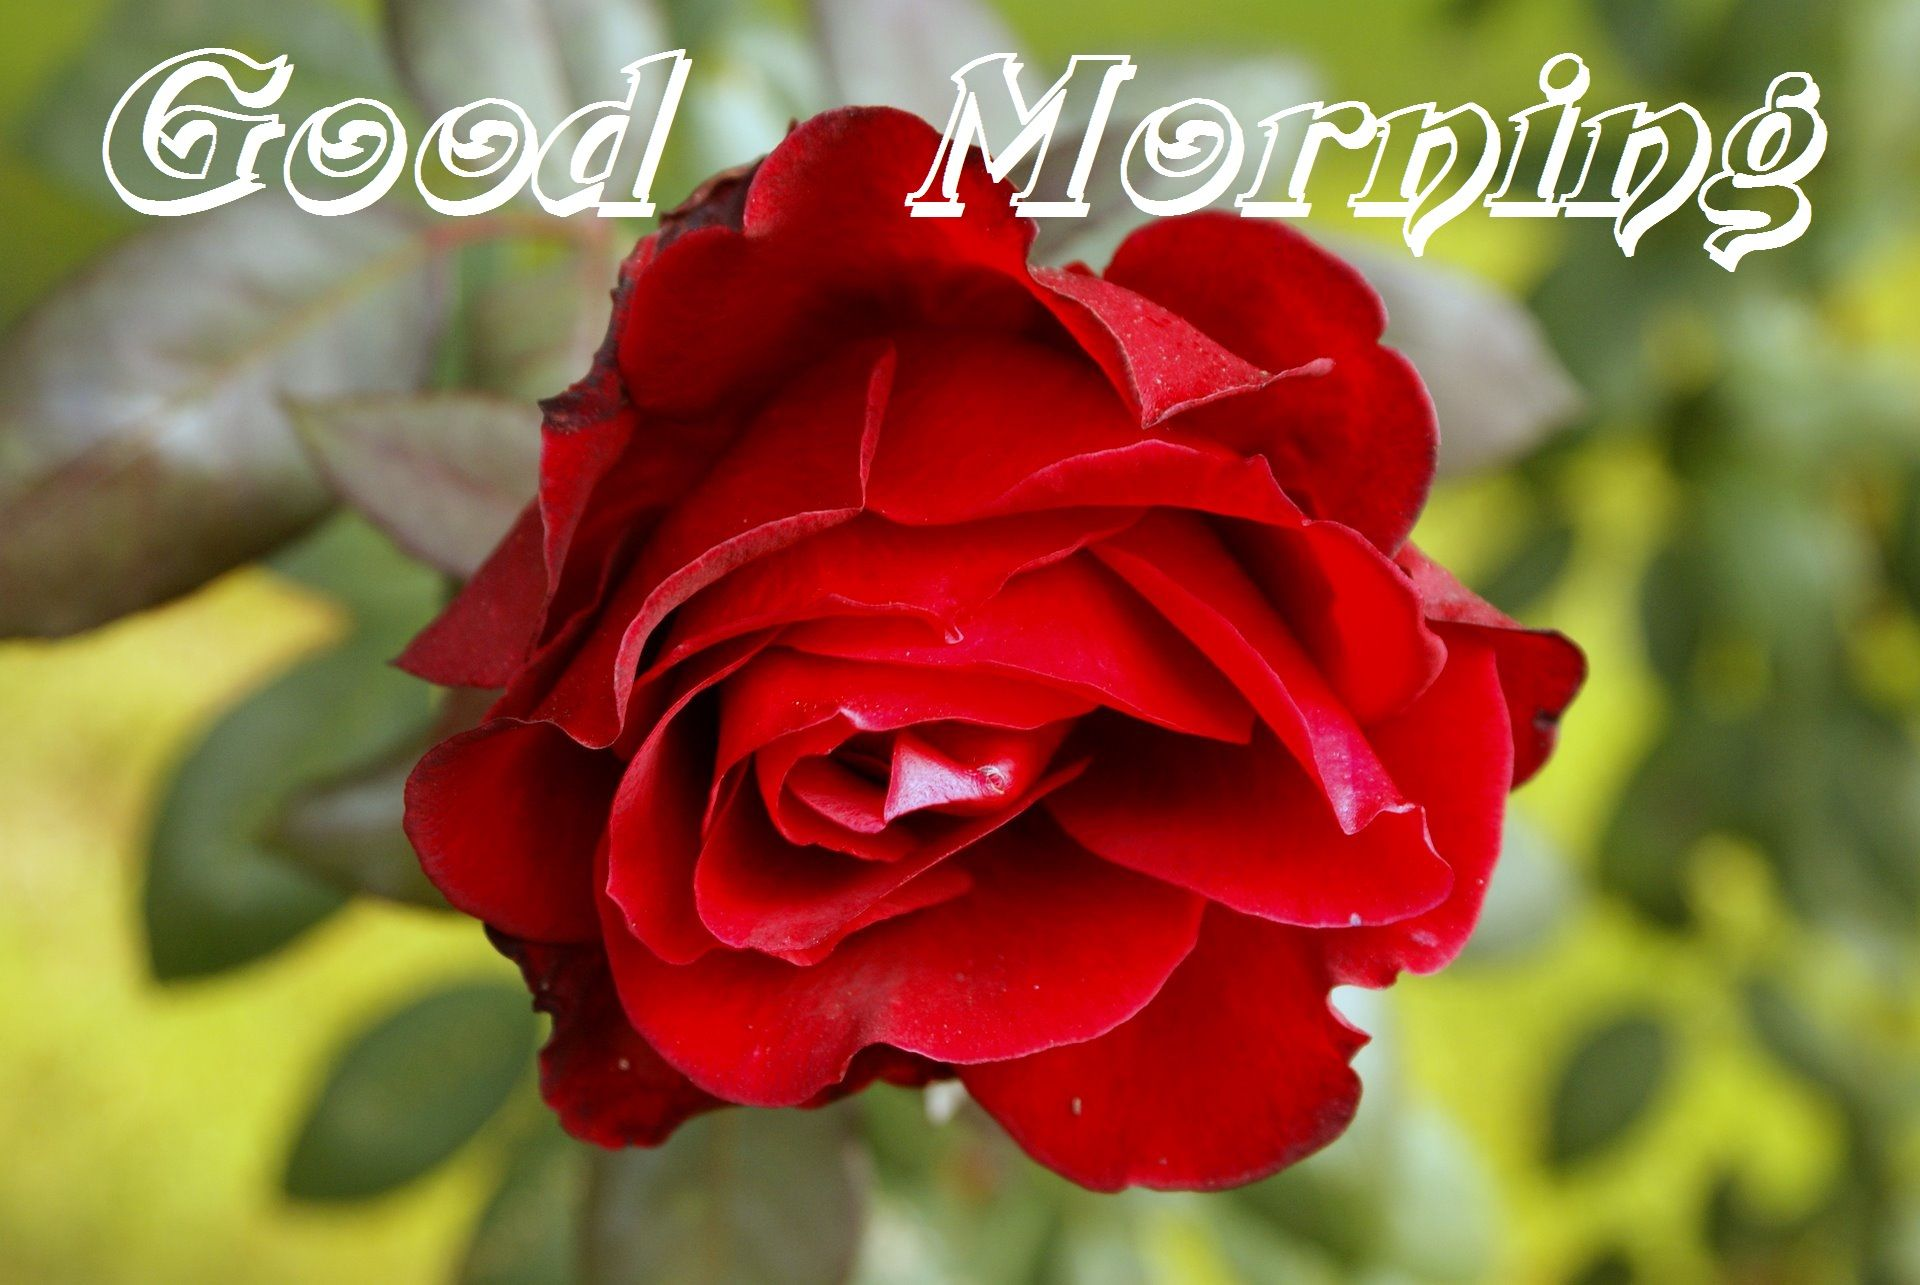 Good Morning Quotes Red Rose : Good morning red rose cards for my love